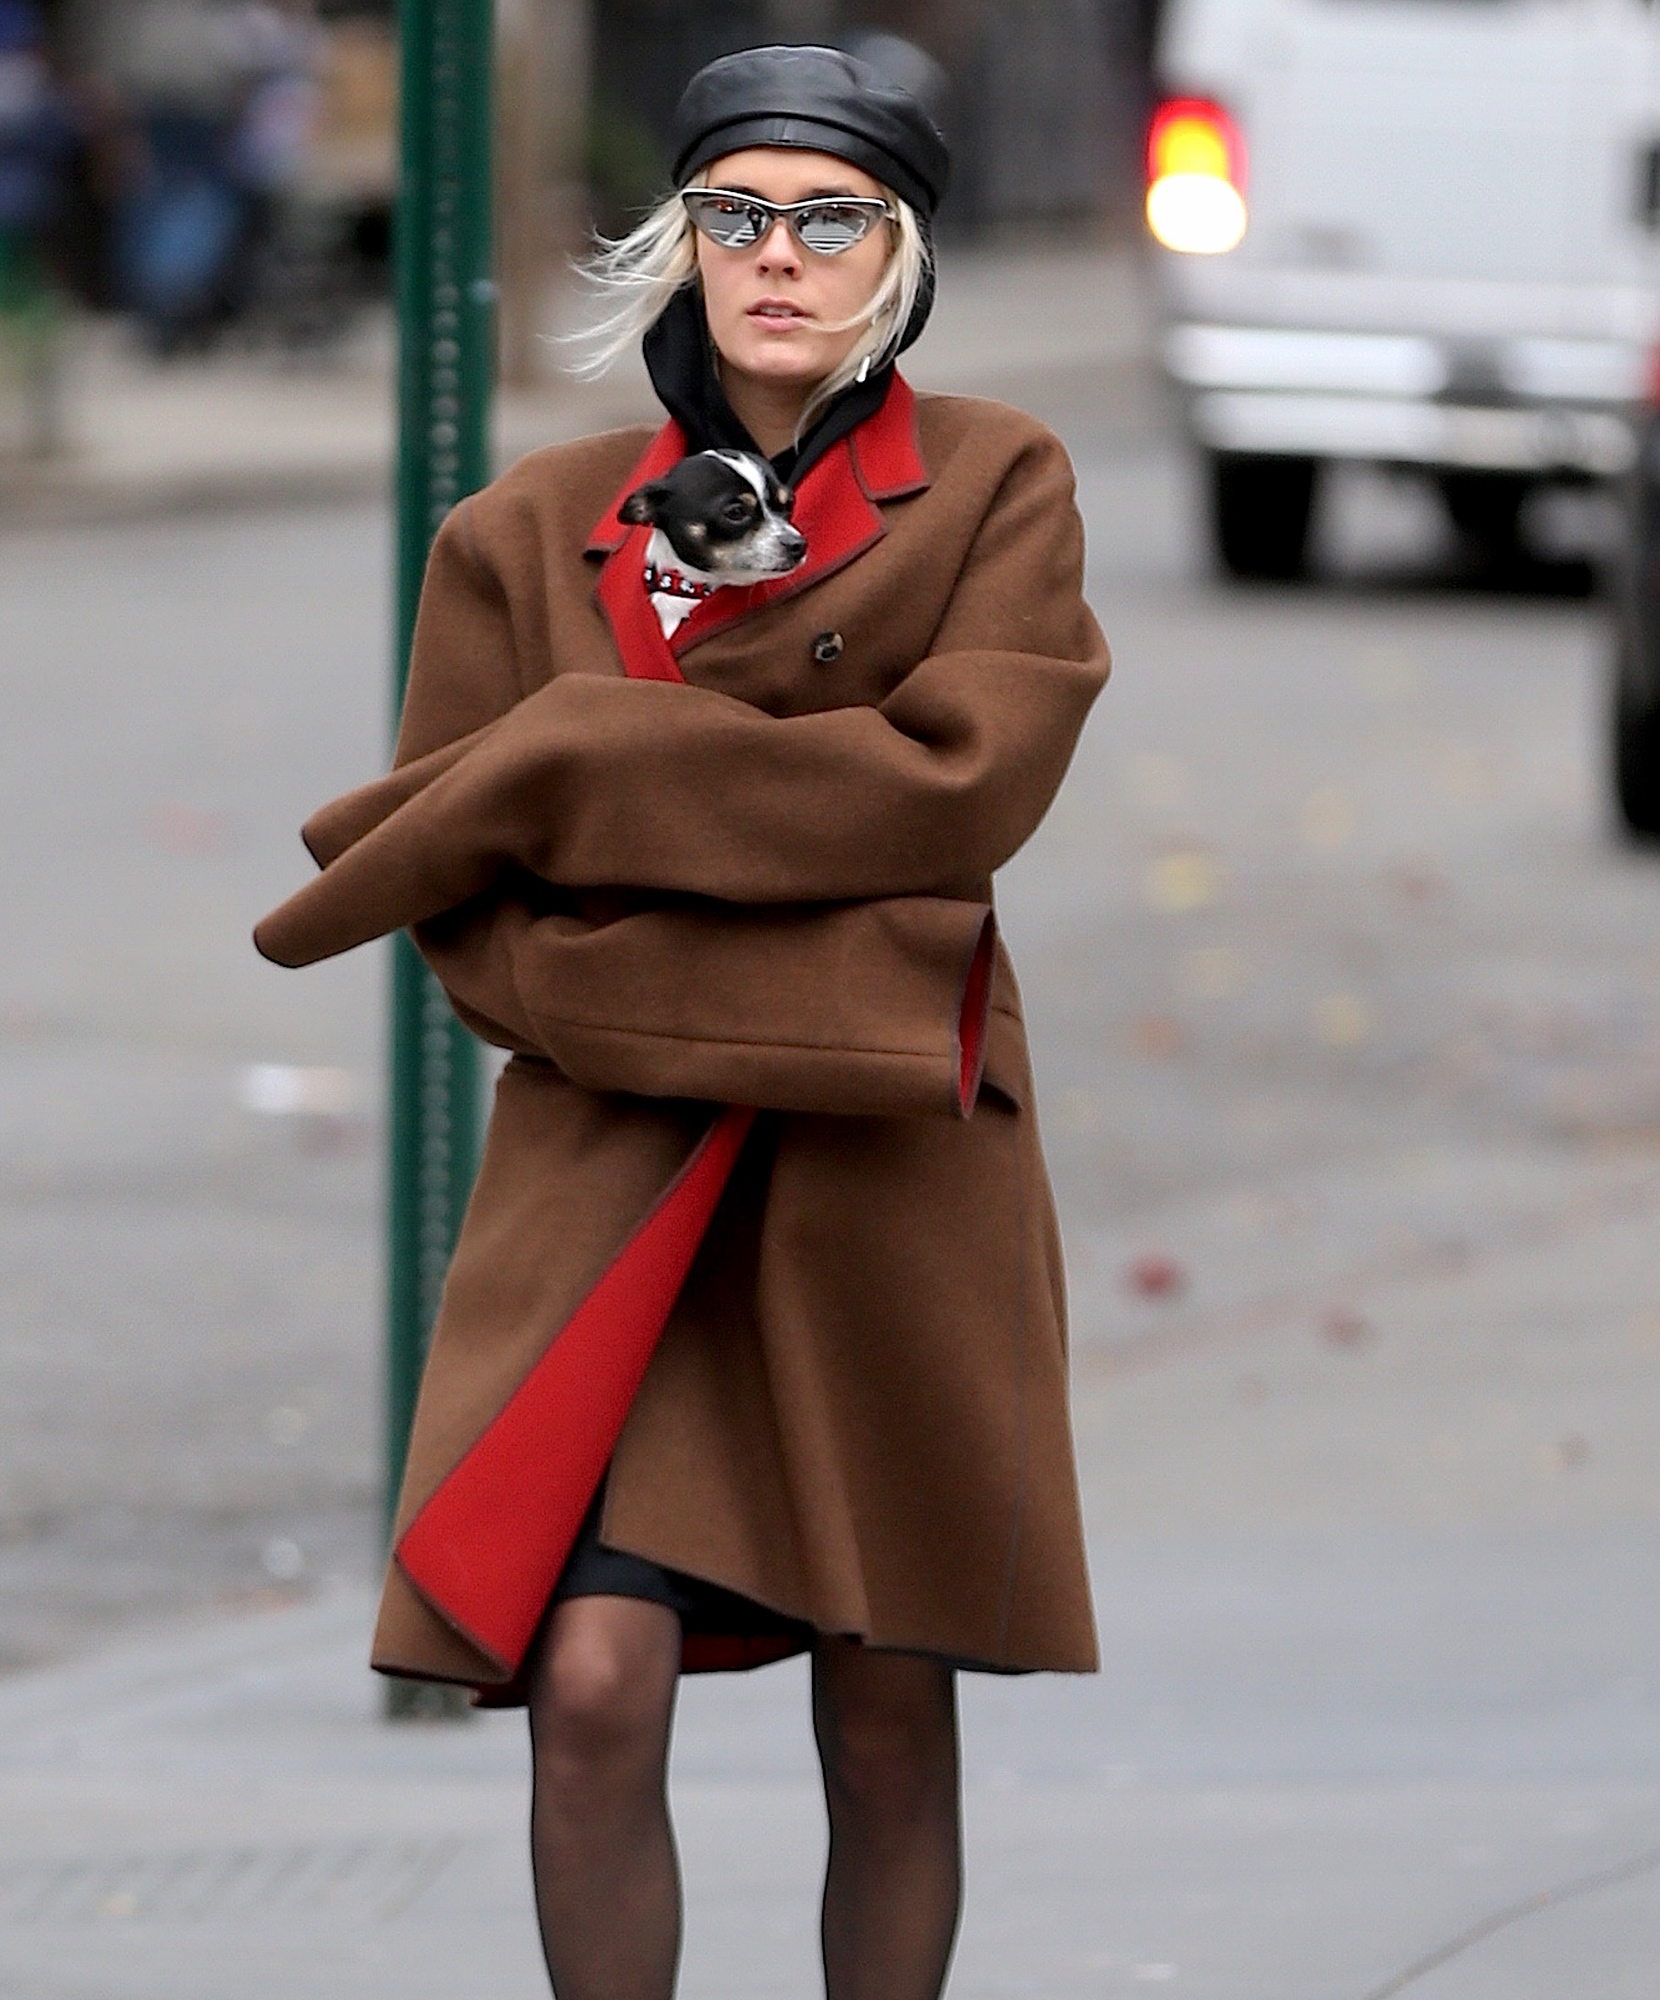 Exclusive... Chloe Sevigny Out And About In New York City With Her Dog